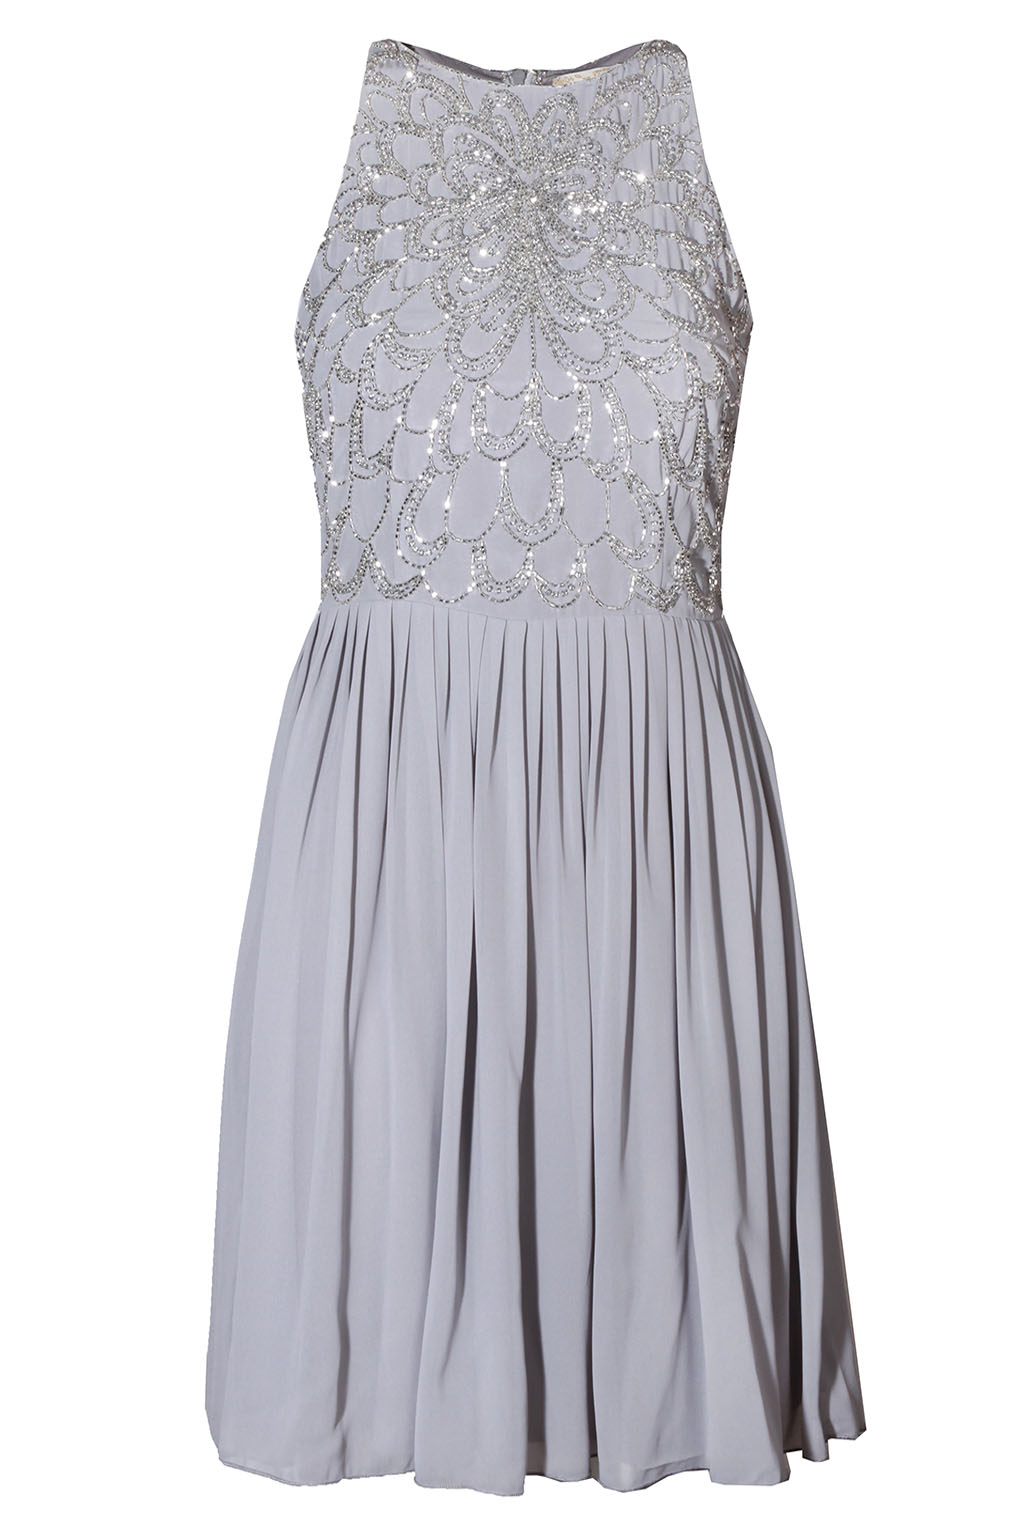 Image of Lace & Beads Abliene Grey Dress